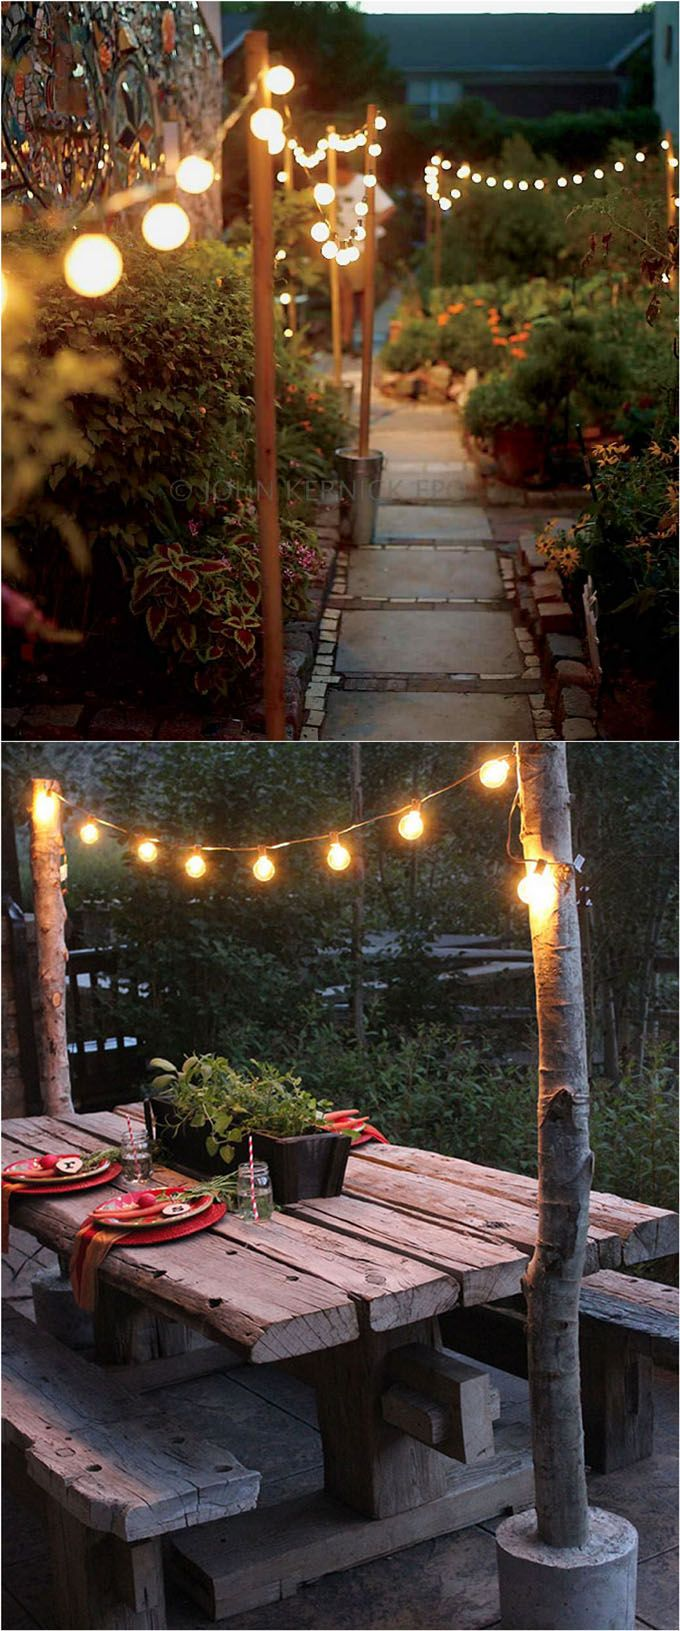 outdoor patio lighting ideas pictures on pin on best diy inspirations pin on best diy inspirations